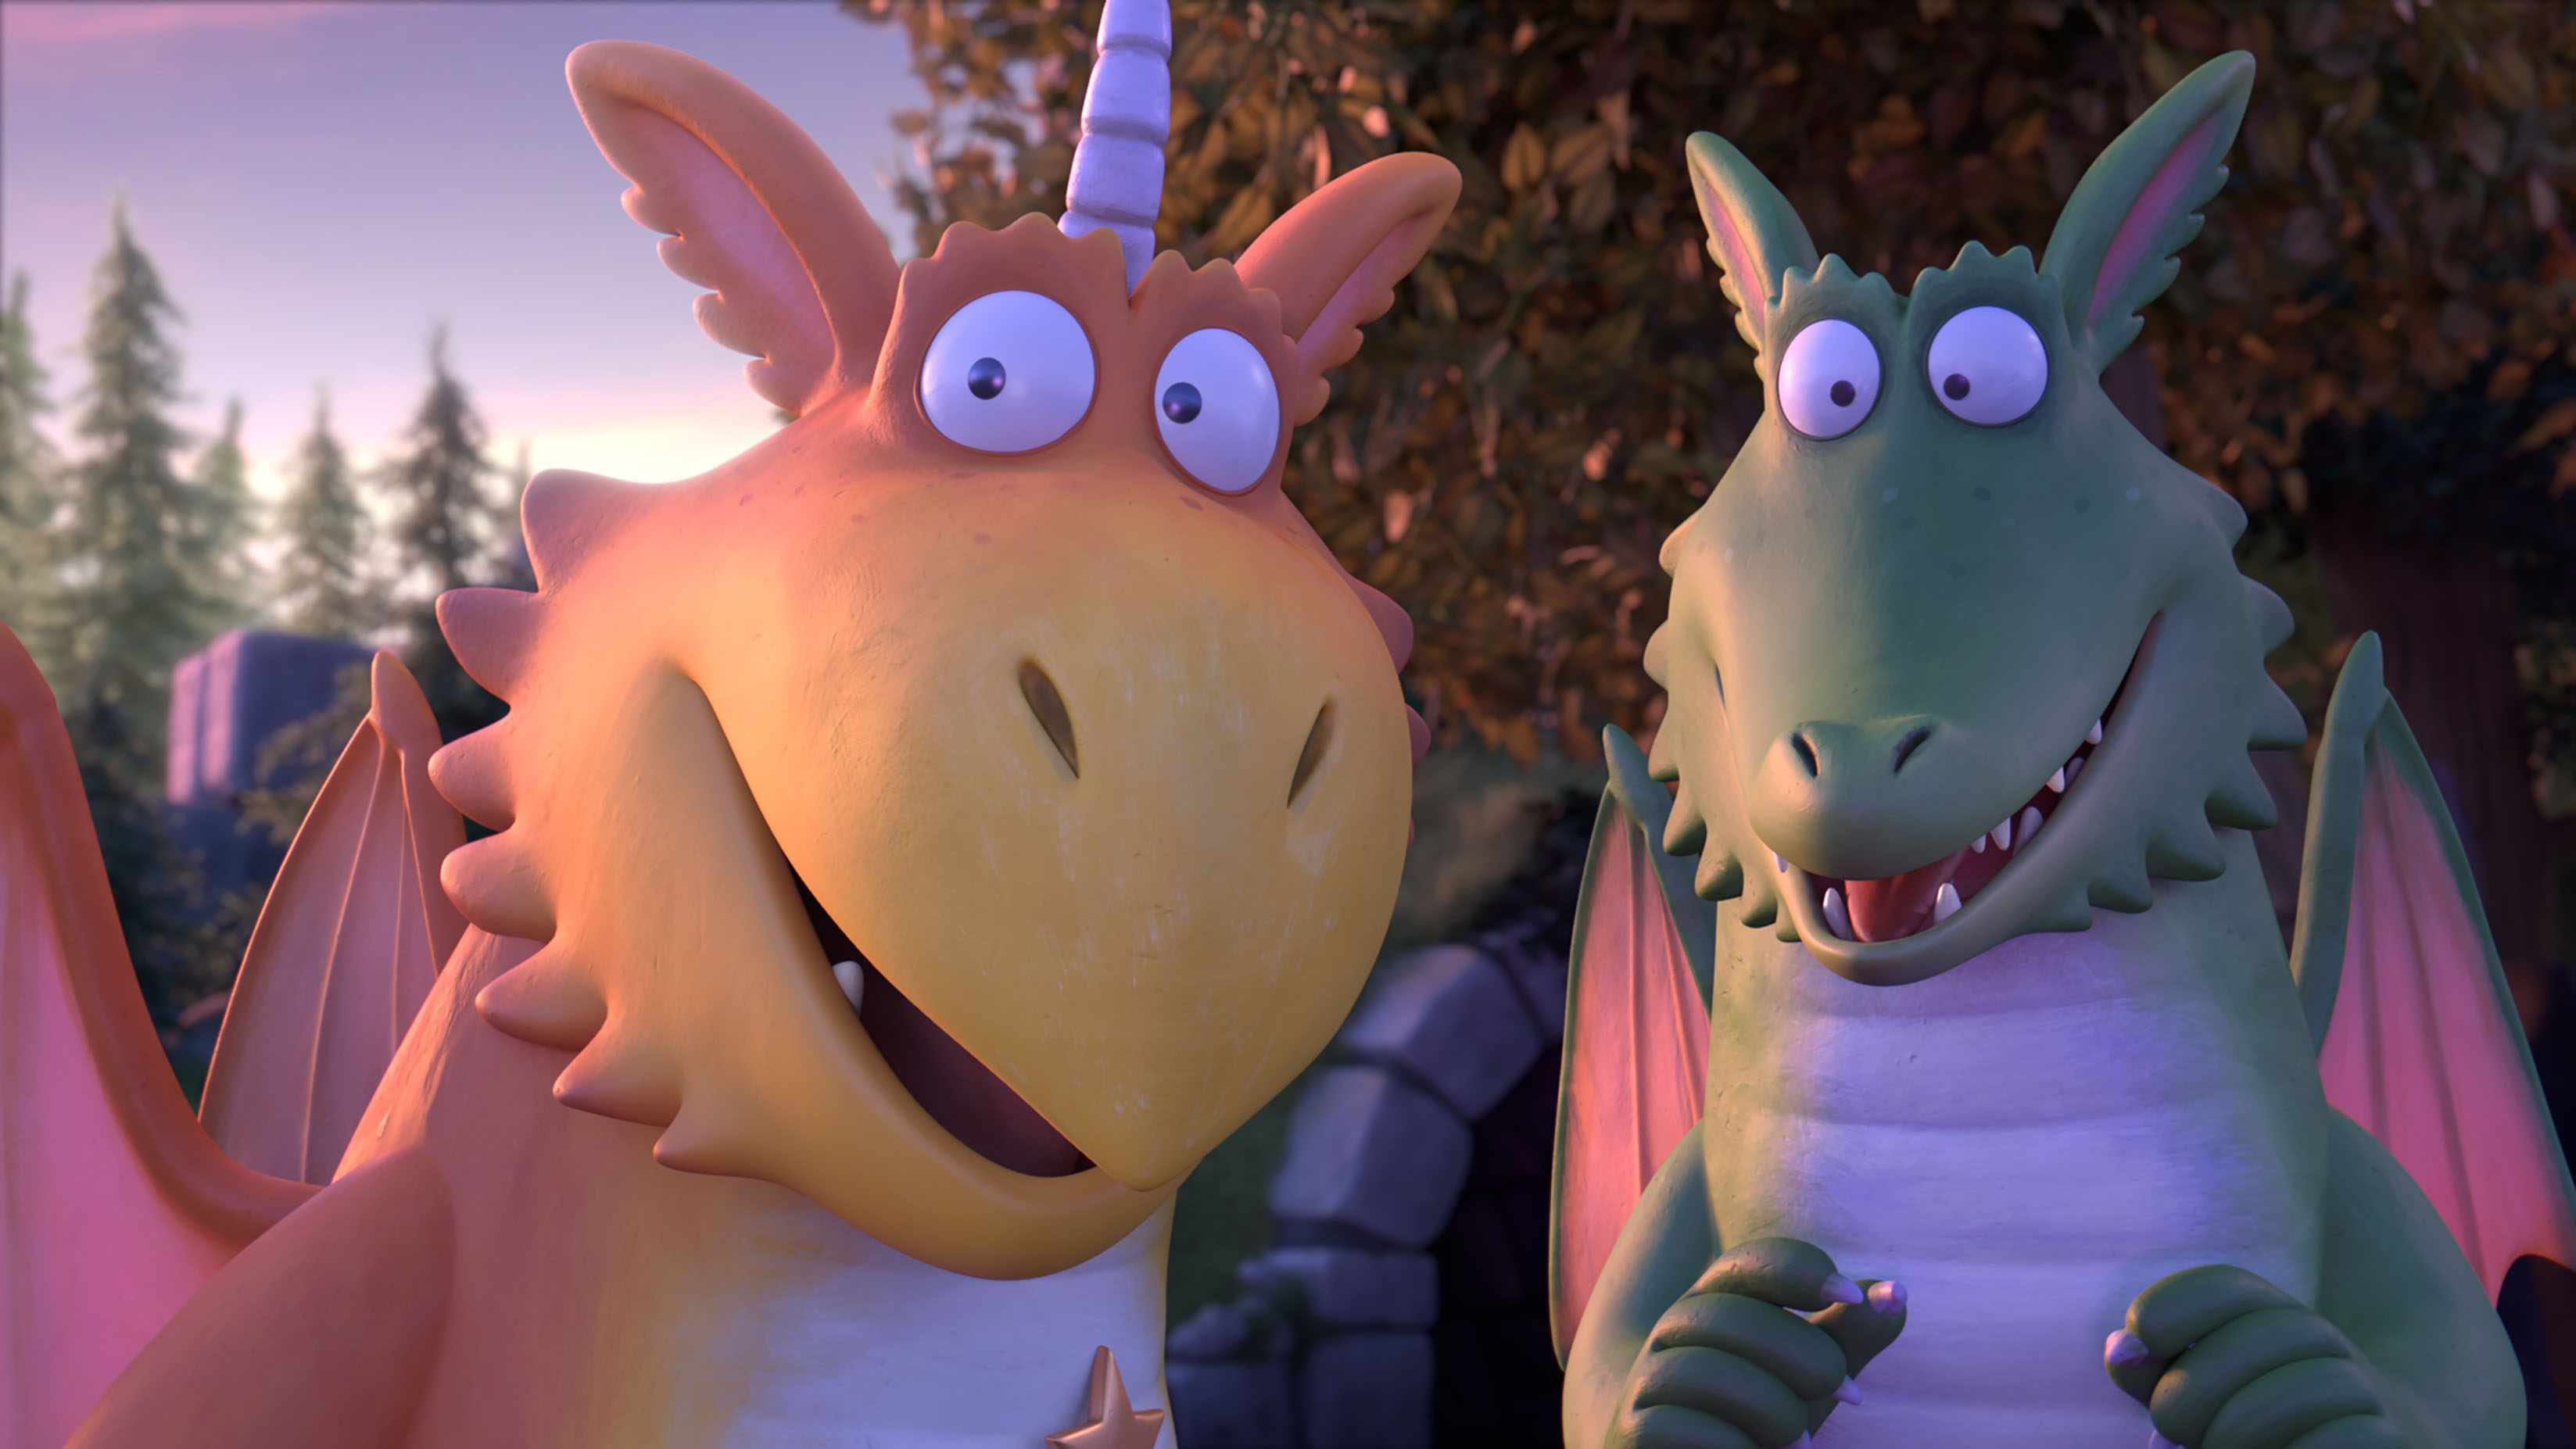 Programme Name: Zog - TX: n/a - Episode: Zog - Early Release Pic (No. n/a) - Picture Shows: Zog voiced by Hugh Skinner and Madam Dragon voiced by Tracey Ullman.  - (C) Magic Light - Photographer: Magic Light